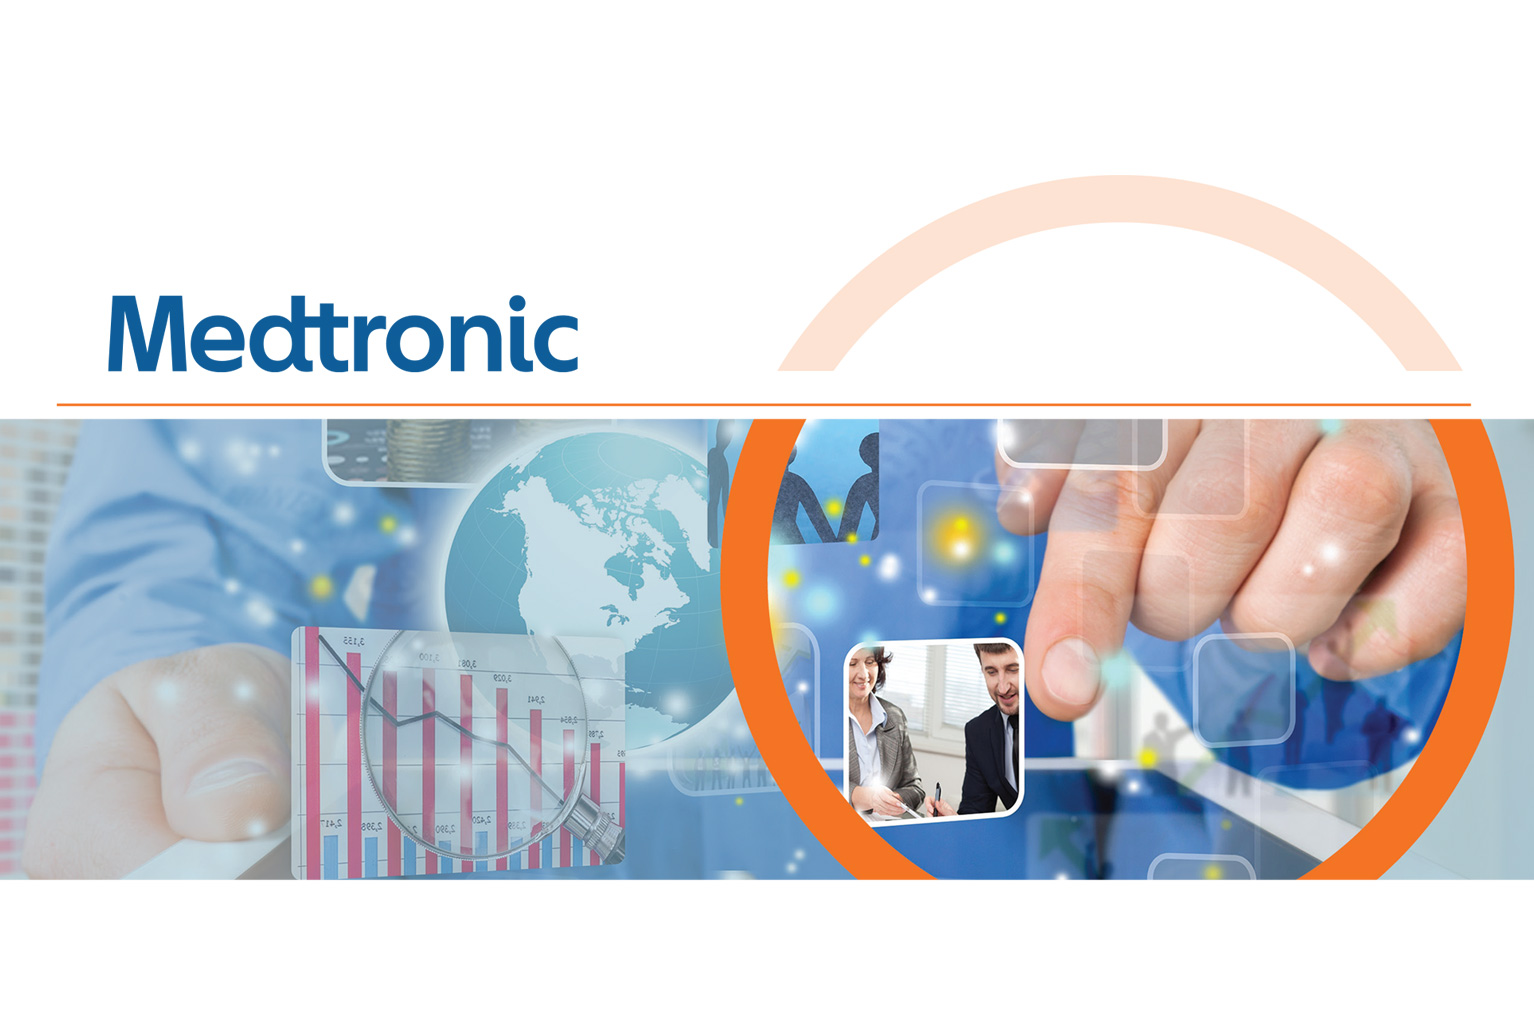 Case Study: Medtronic and Relationship One - Relationship One